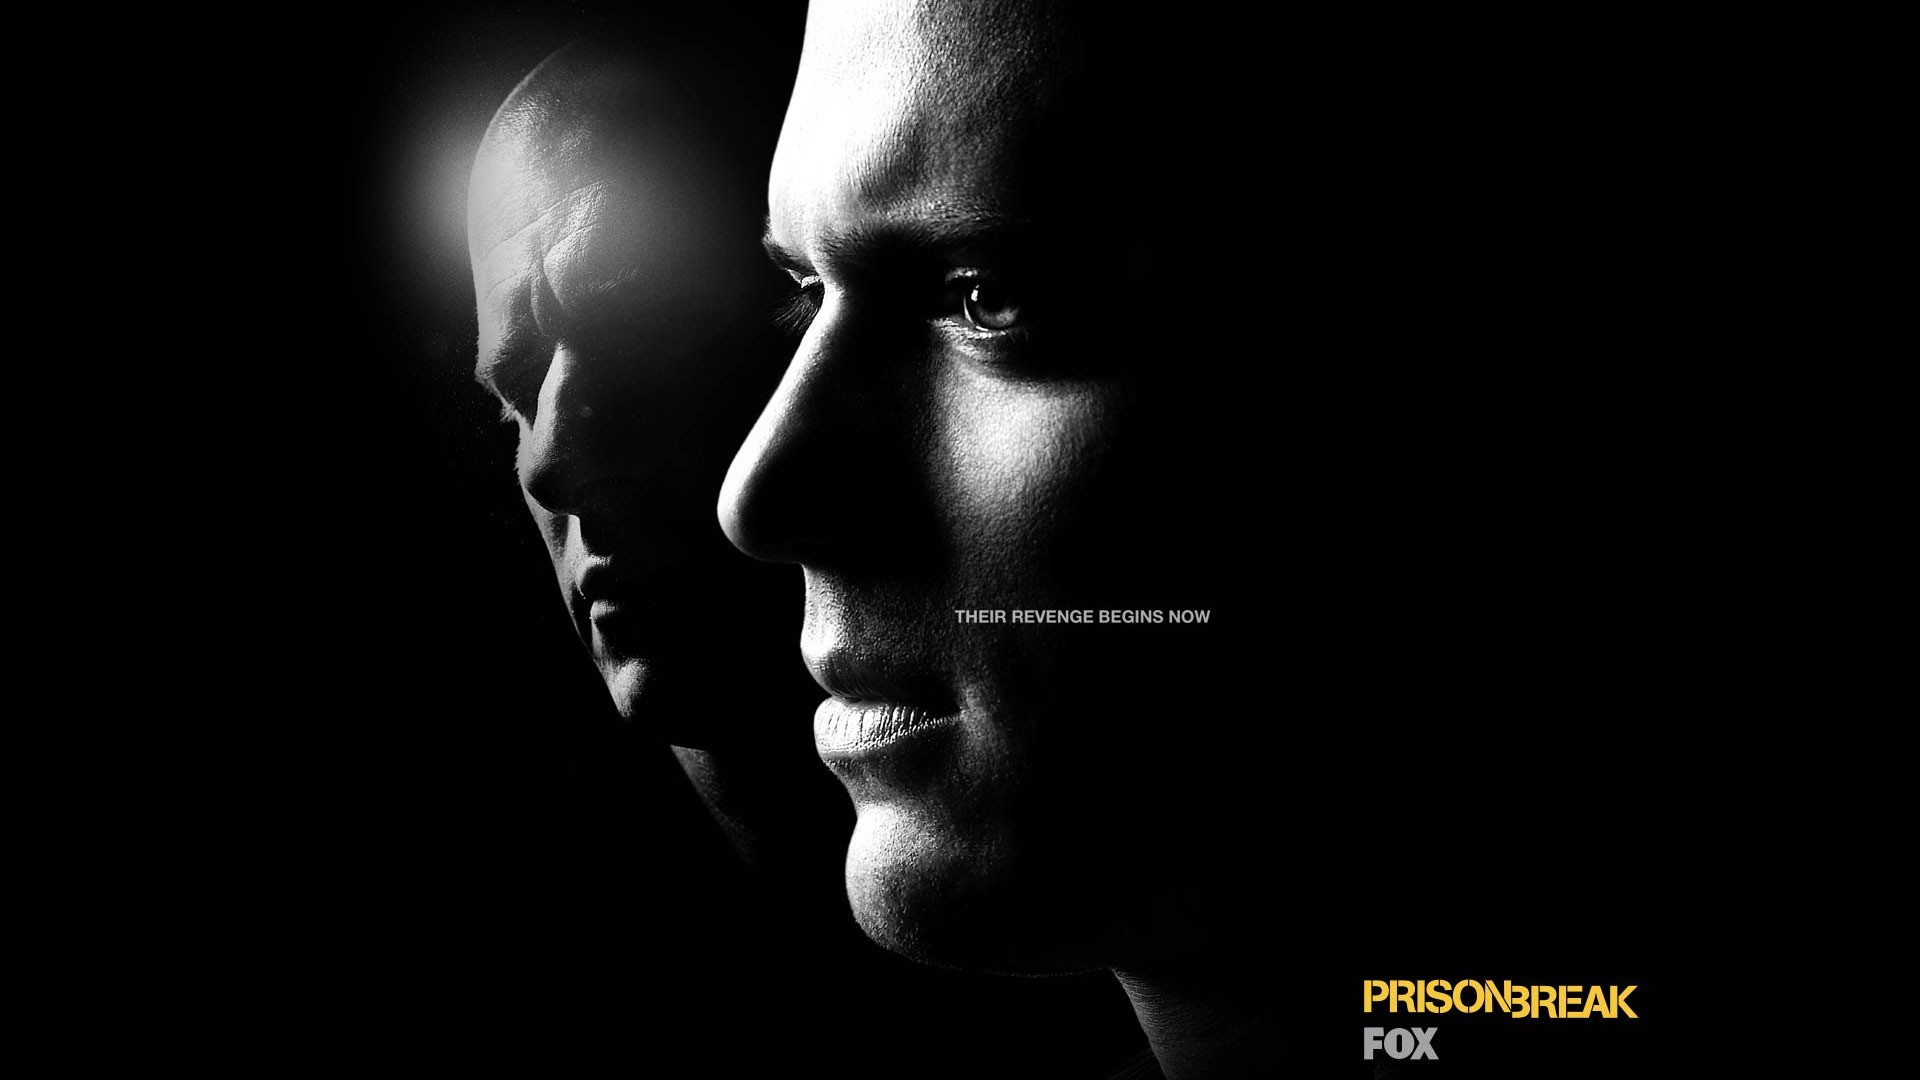 1920x1080 Prison Break revenge Wallpaper Prison Break Movies Wallpapers